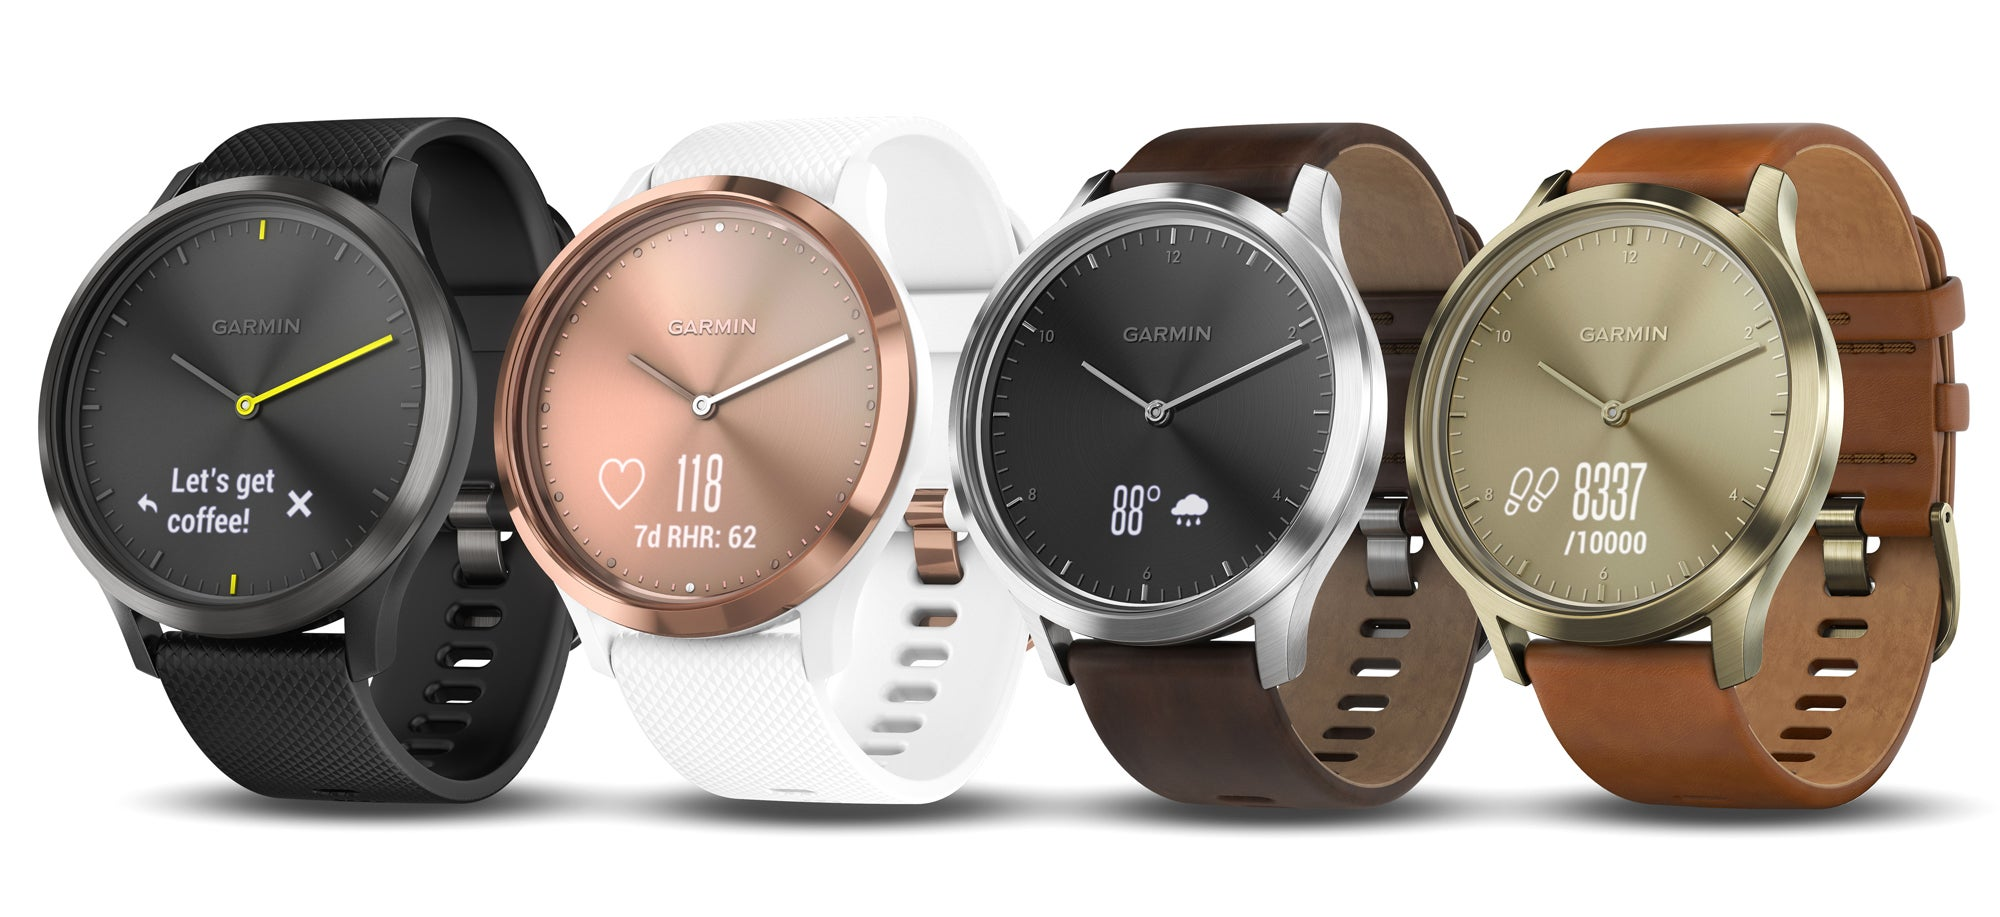 You Can Finally Hide Your Addiction To Smartwatches